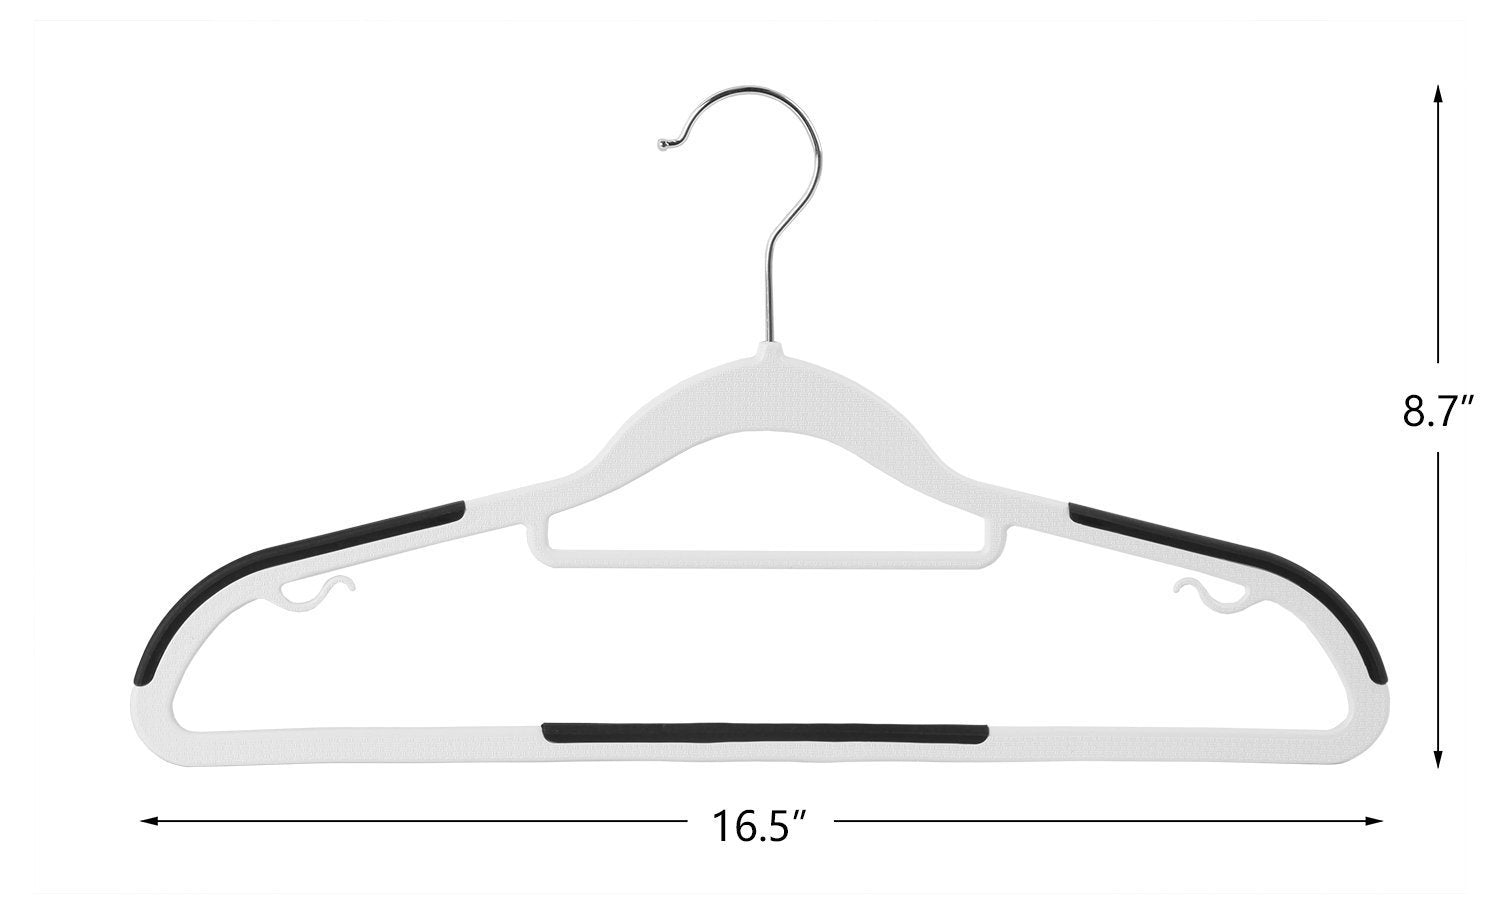 Best seller  finnhomy heavy duty 50 pack plastic hangers durable clothes hangers with non slip pads space saving organizer for bedroom closet great for shirts pants white